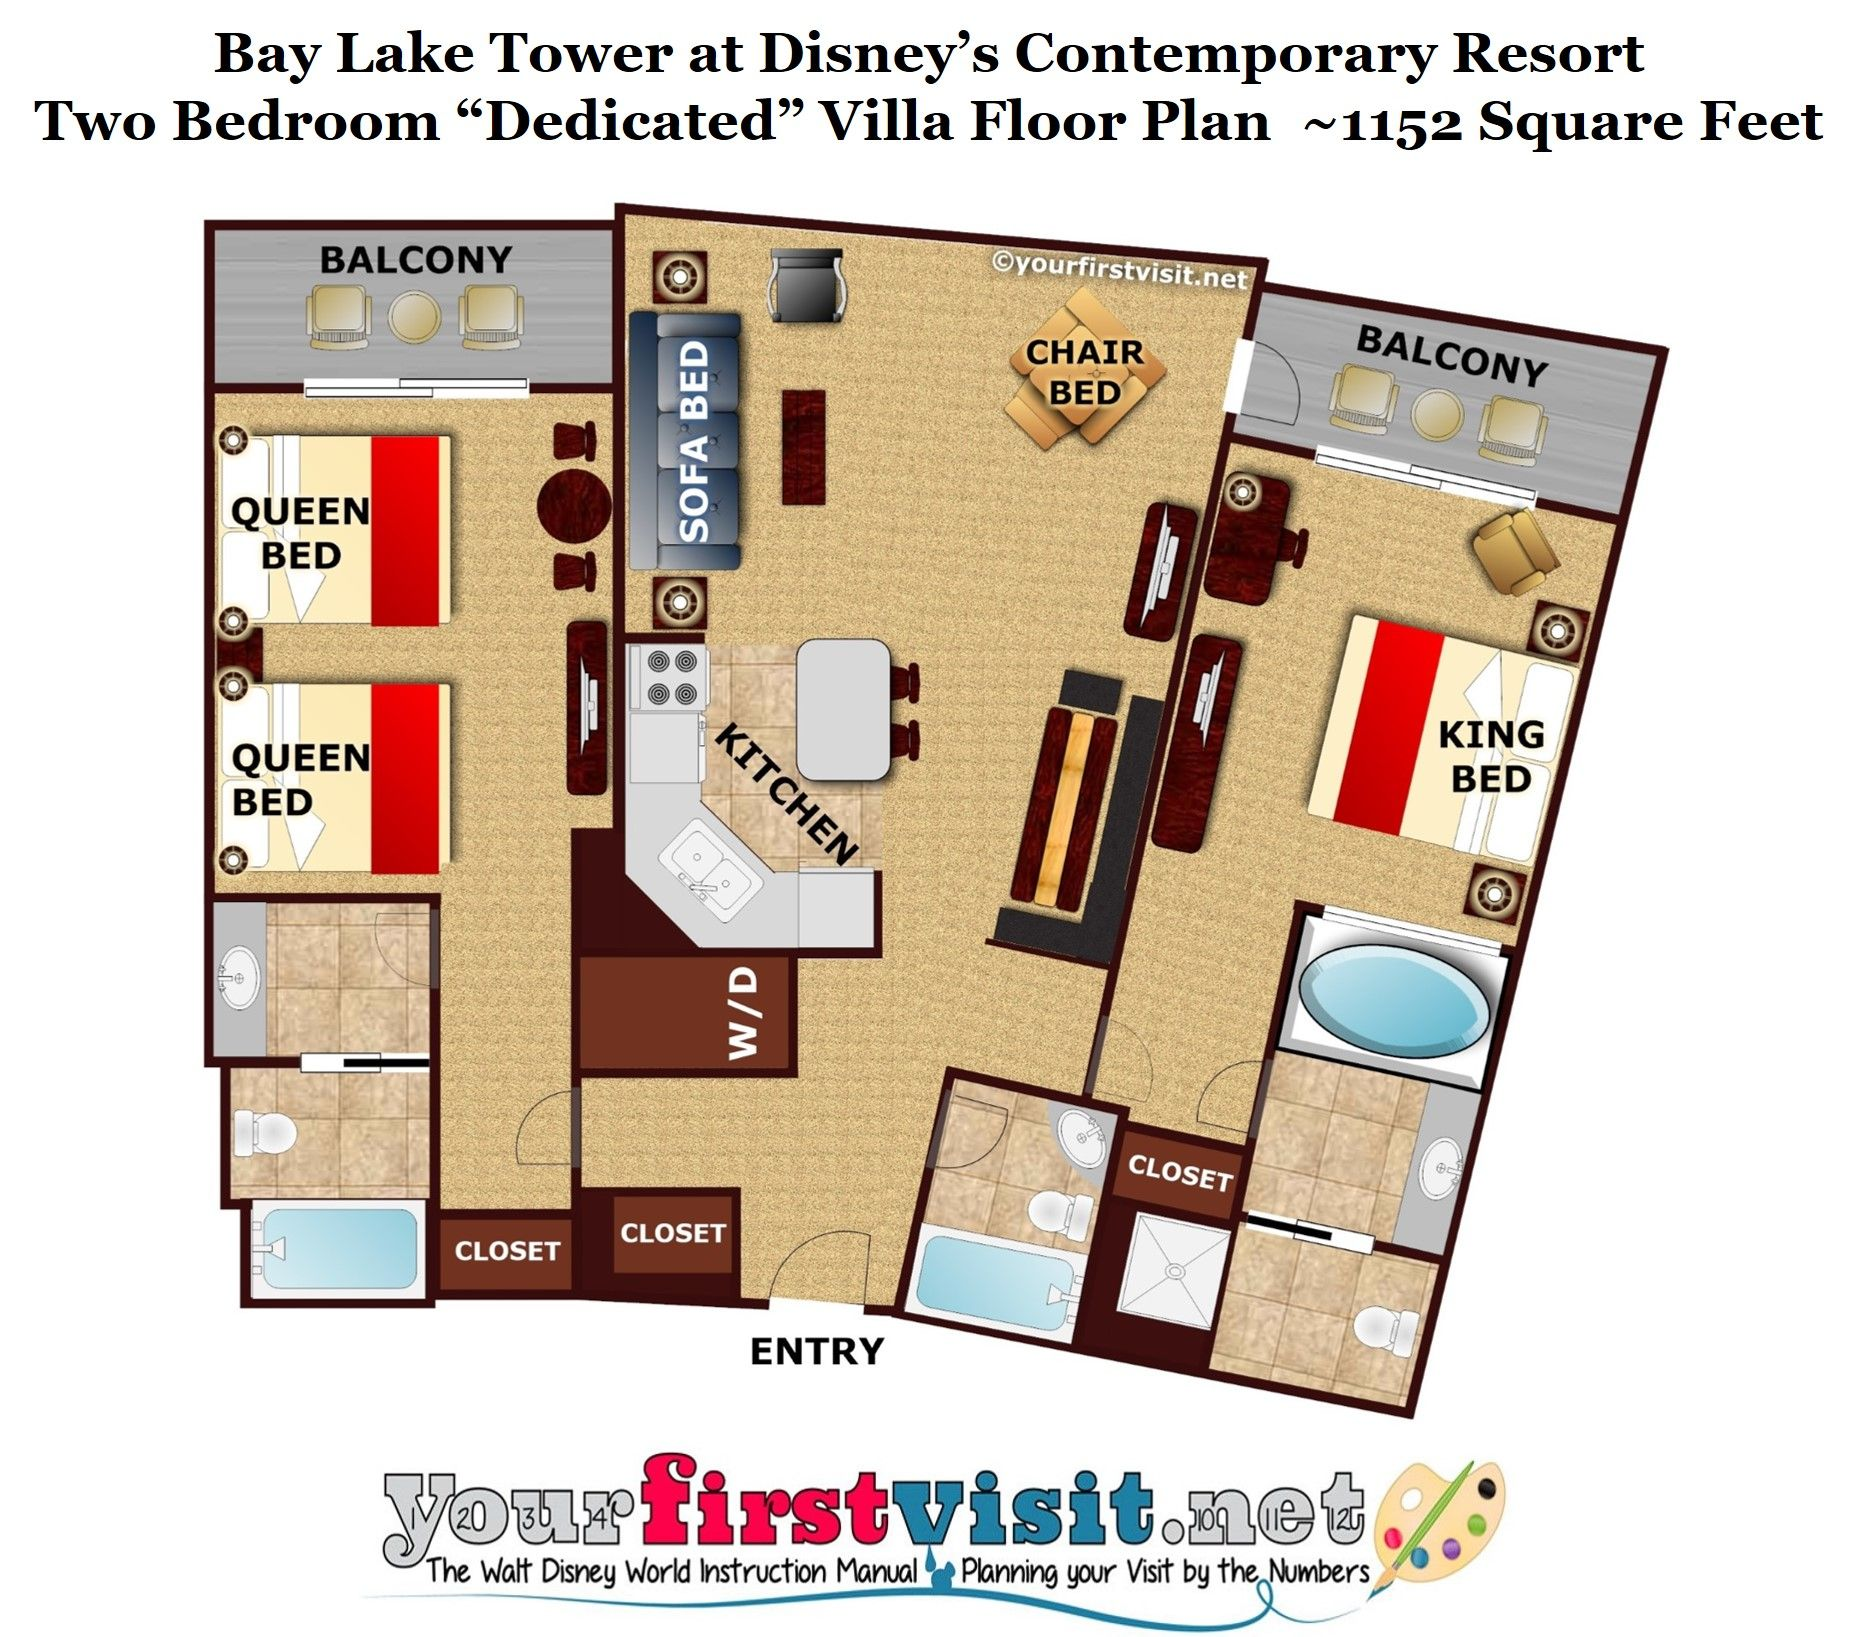 Theming And Accommodations At Bay Lake Tower At Disney S Contemporary Resort Yourfirstvisit Net Bay Lake Tower Disney Bay Lake Tower Disney Contemporary Resort